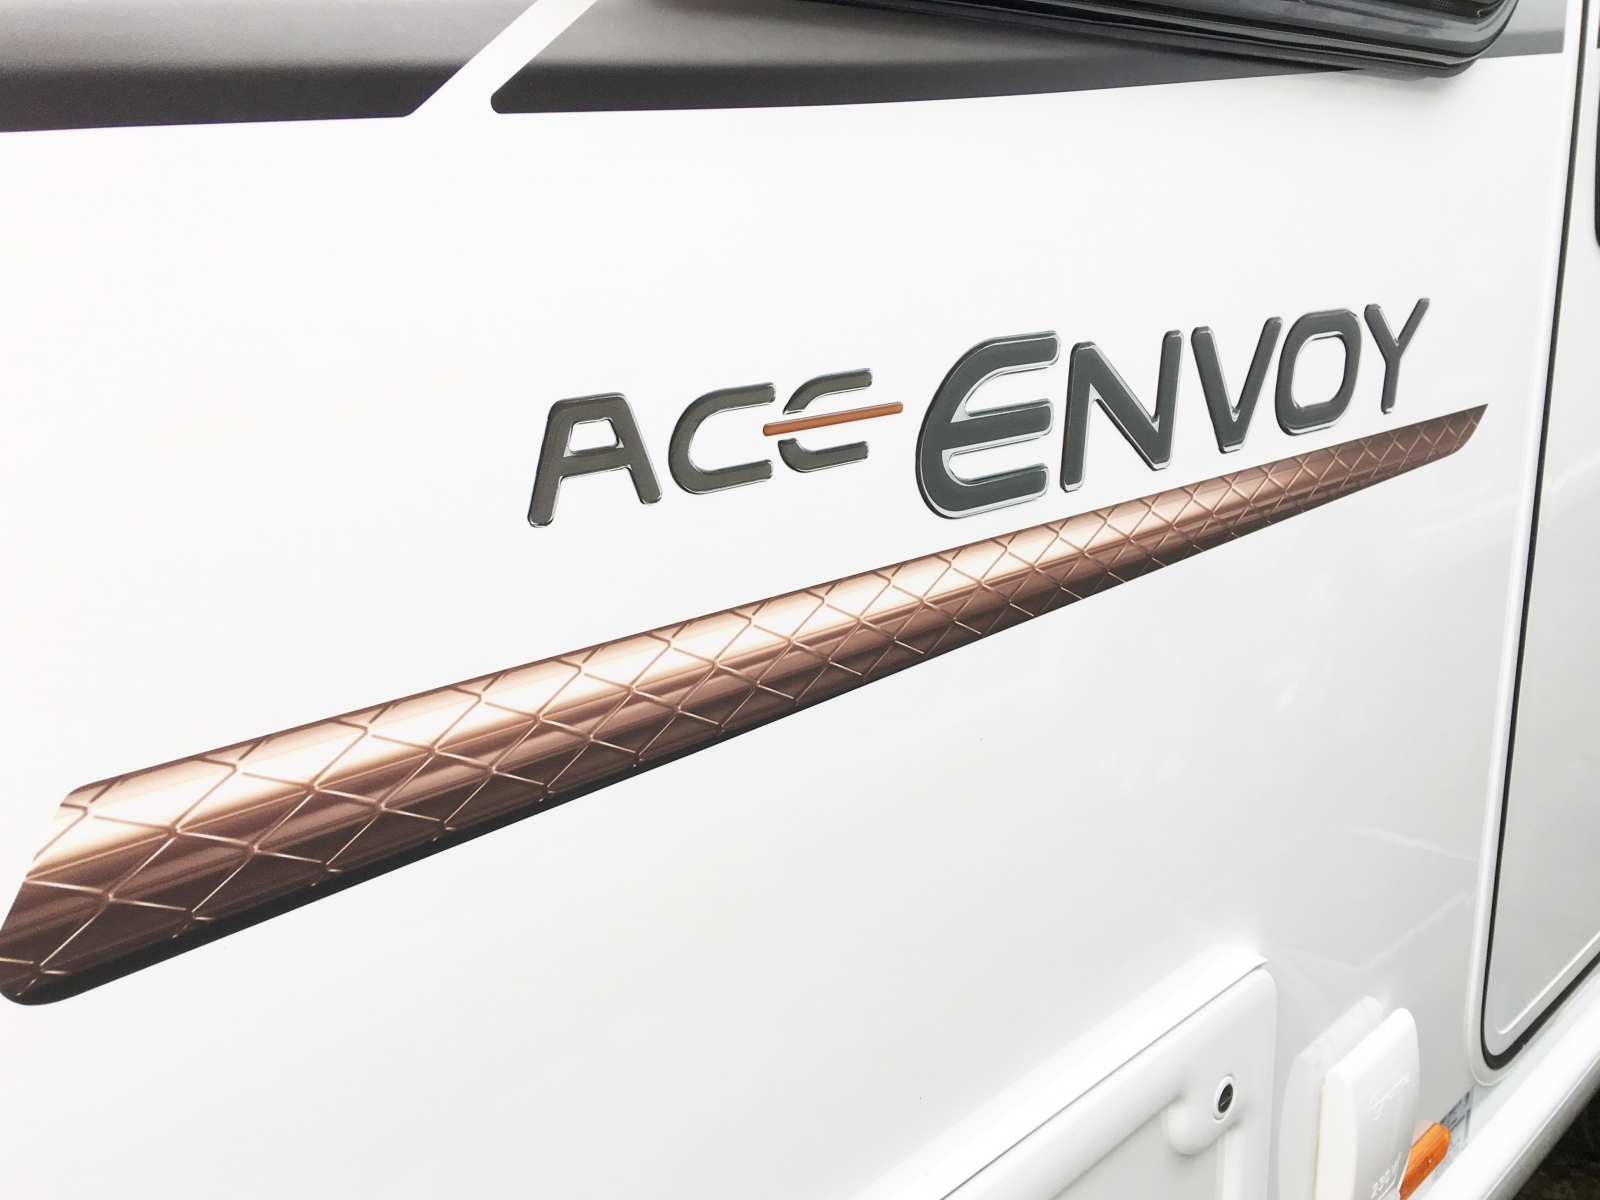 Swift Ace SE Envoy 2018- Wandahome Special Edition image